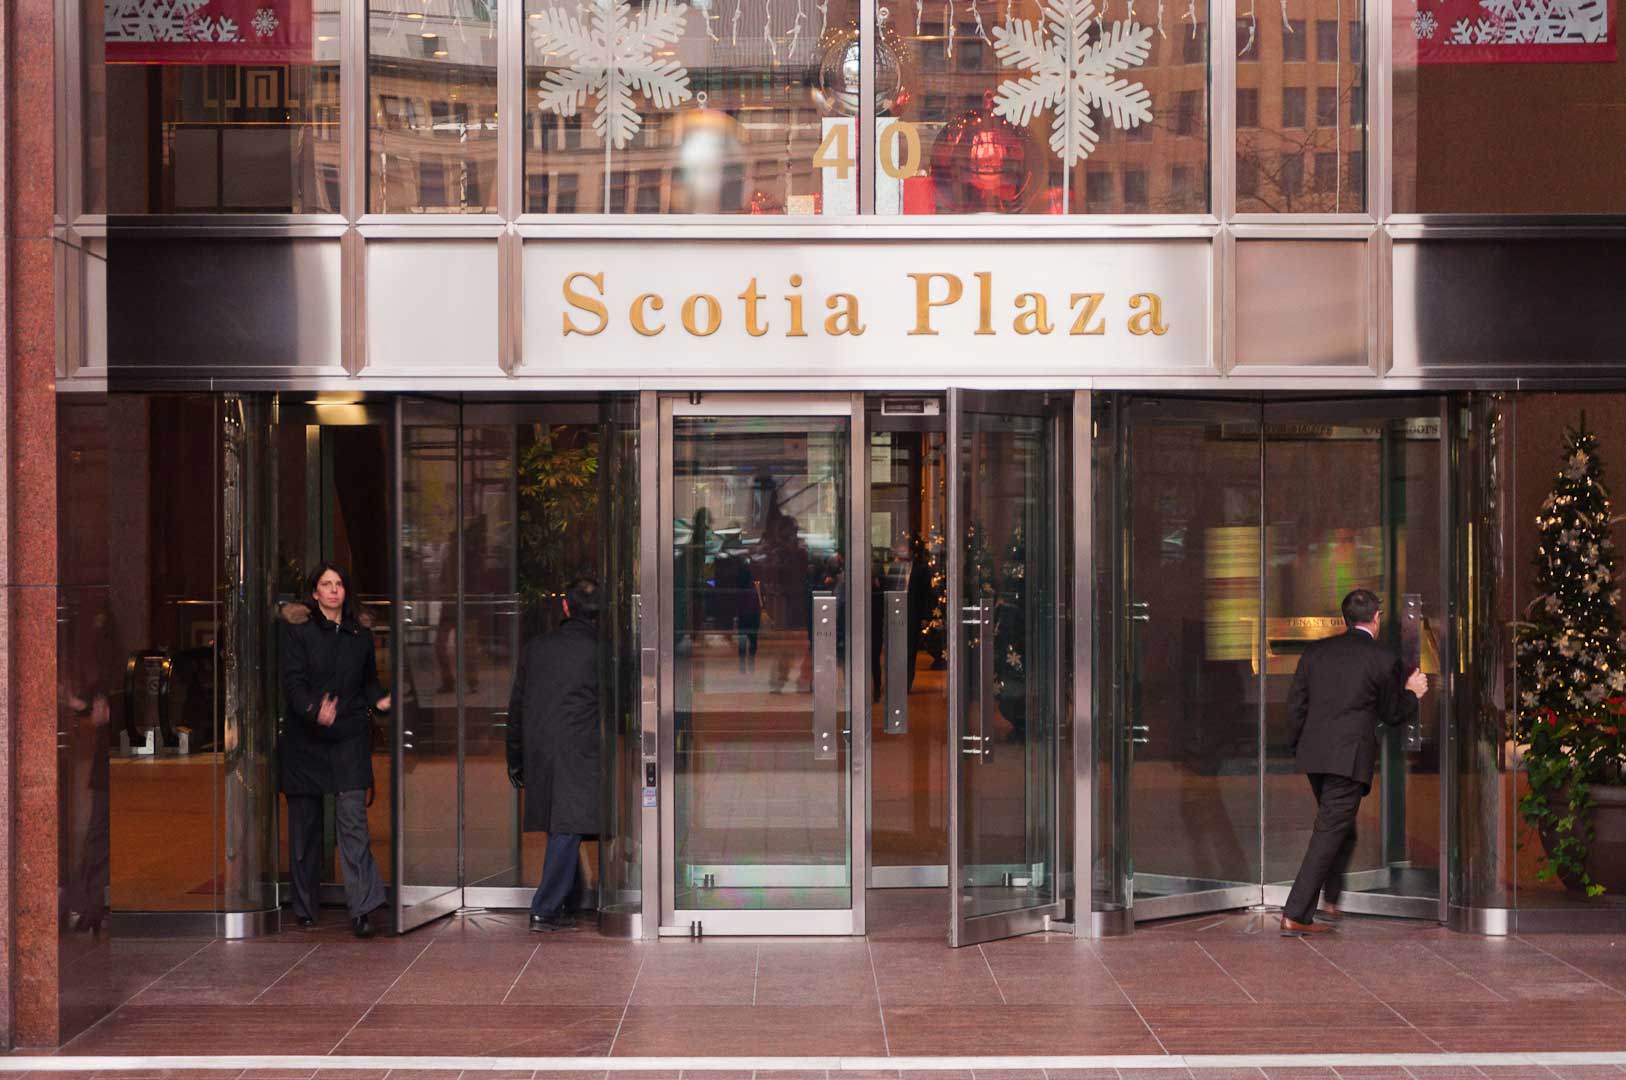 People going through the Revolving Doors at the Scotia Plaza in Toronto maintained by Explore1